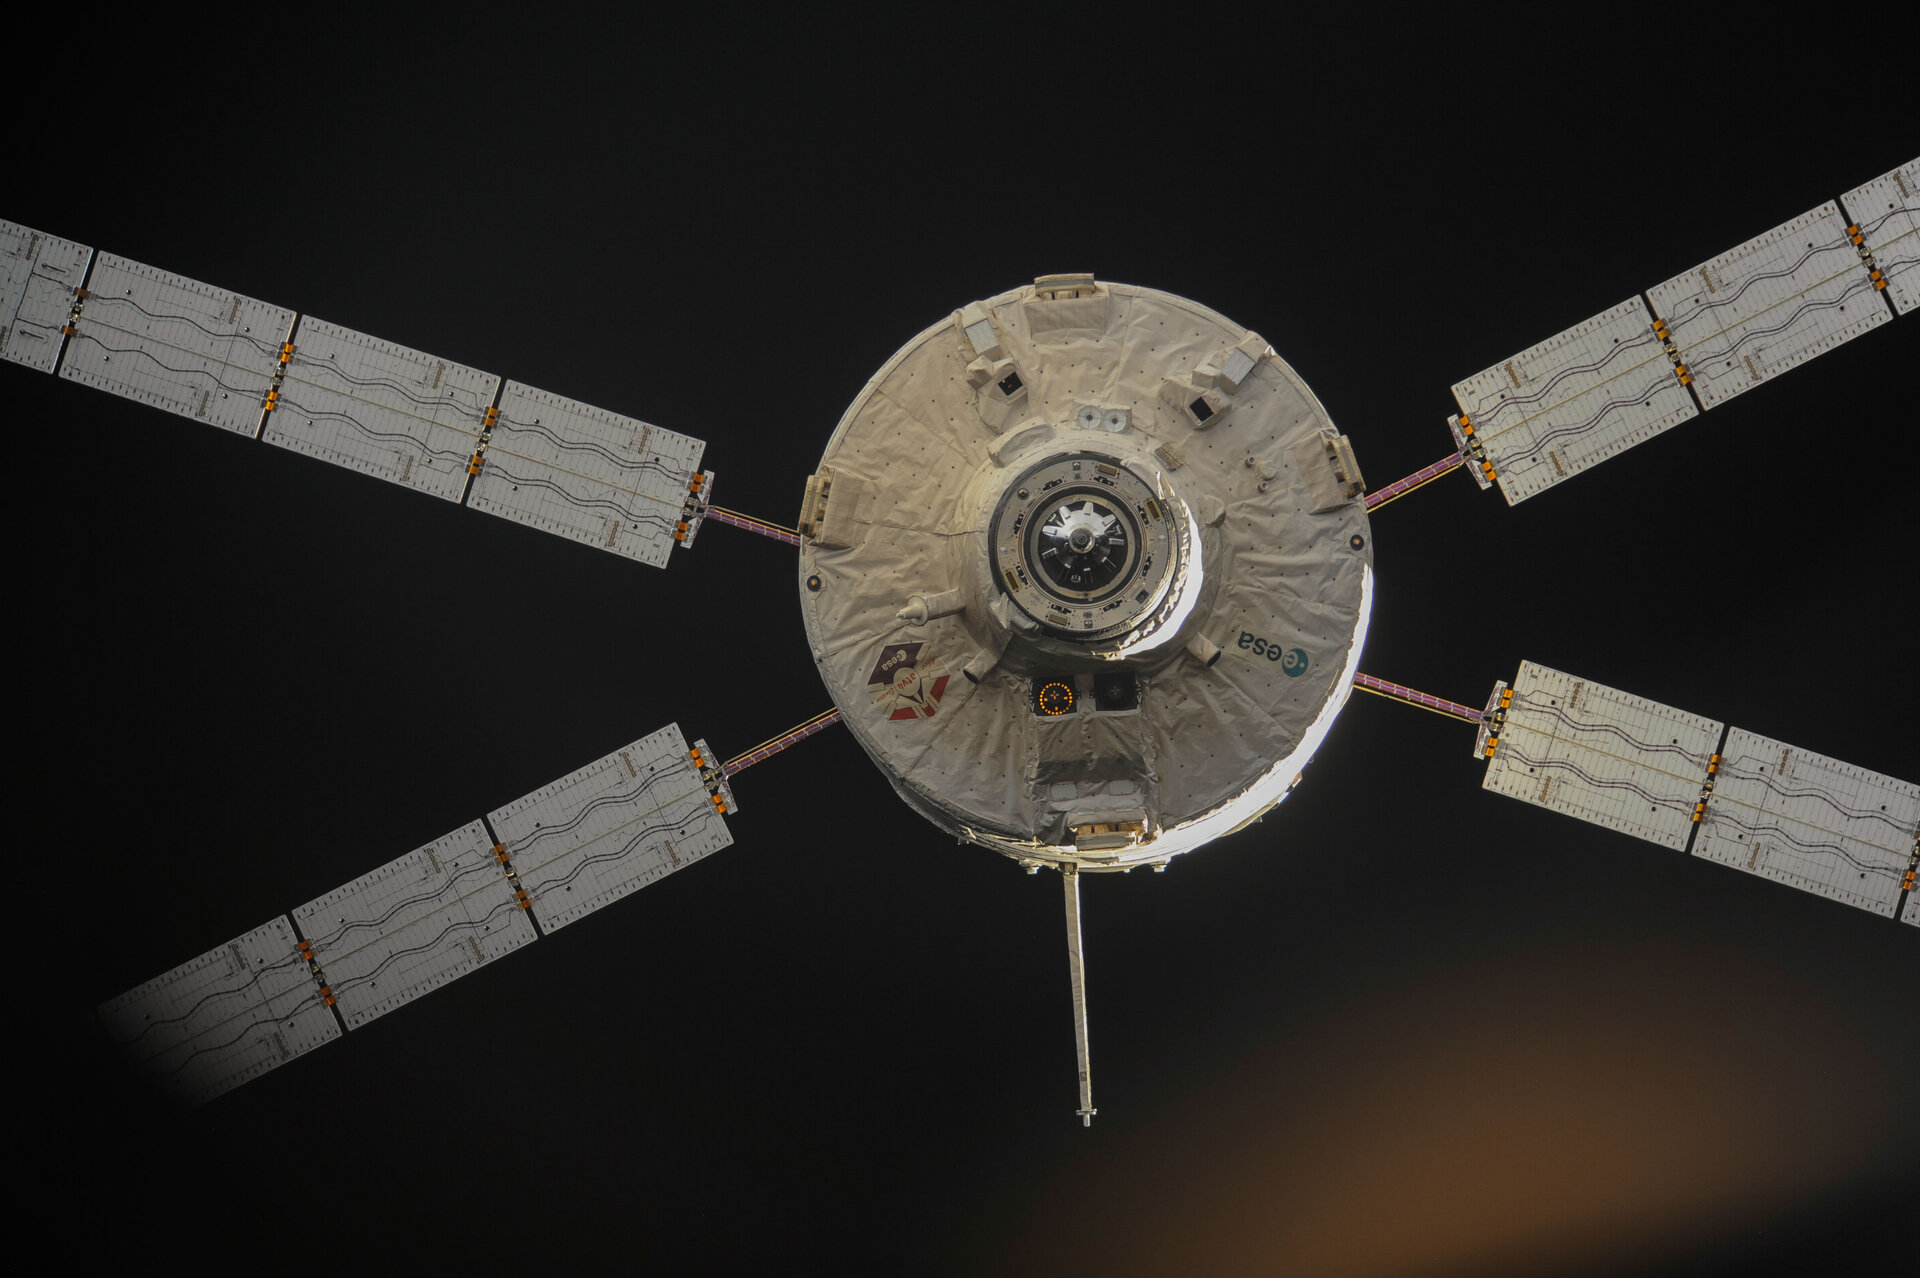 ATV-4 undocks from the ISS